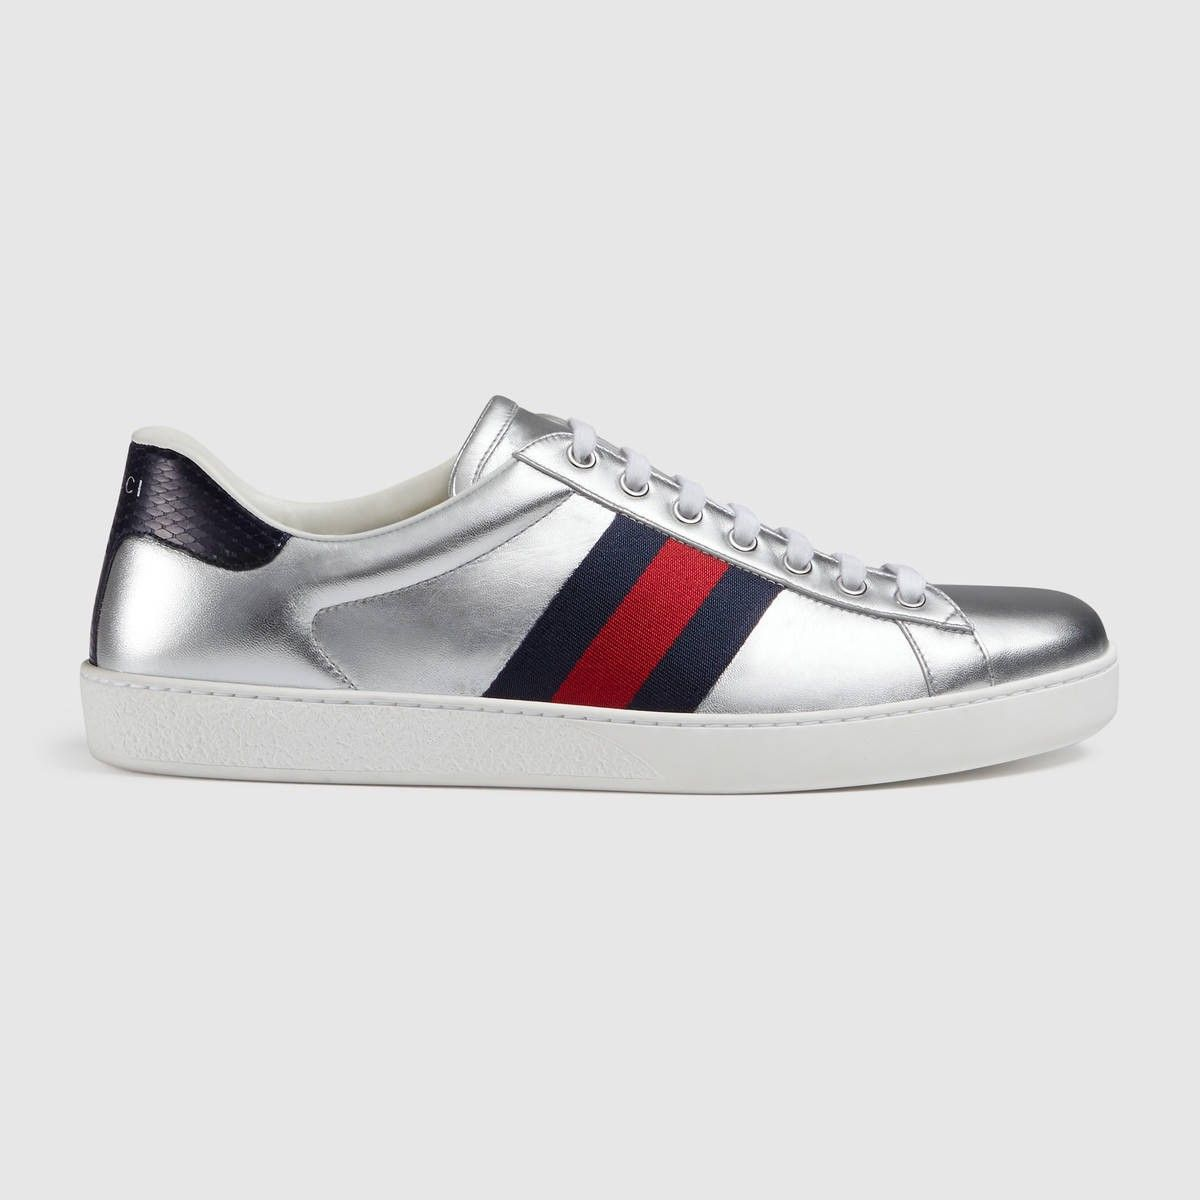 71ddef62d83f GUCCI Ace metallic leather sneaker - silver metallic leather.  gucci  shoes